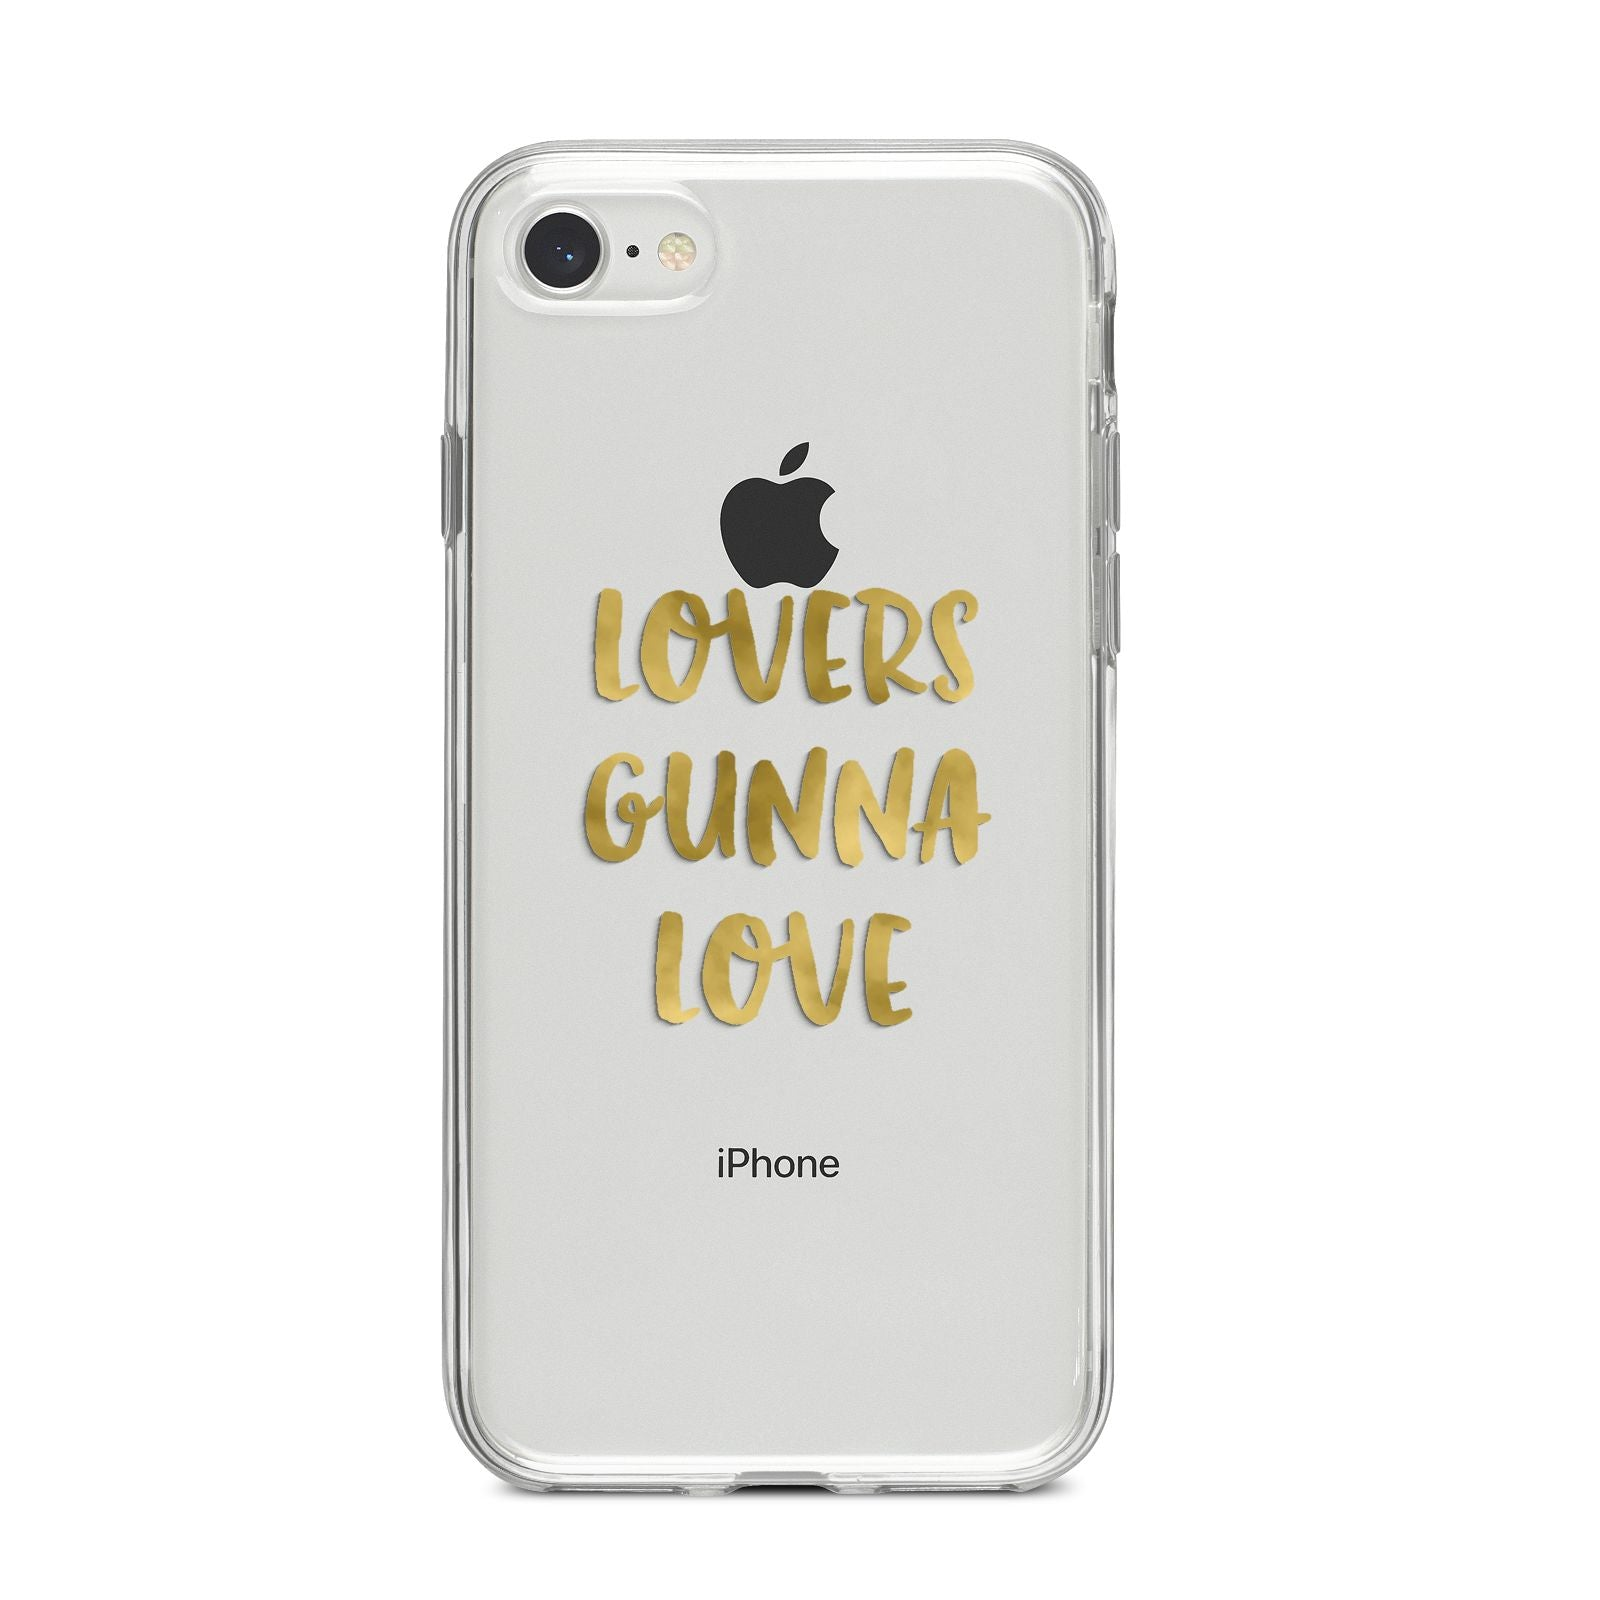 Lovers Gunna Love Real Gold Foil iPhone 8 Bumper Case on Silver iPhone